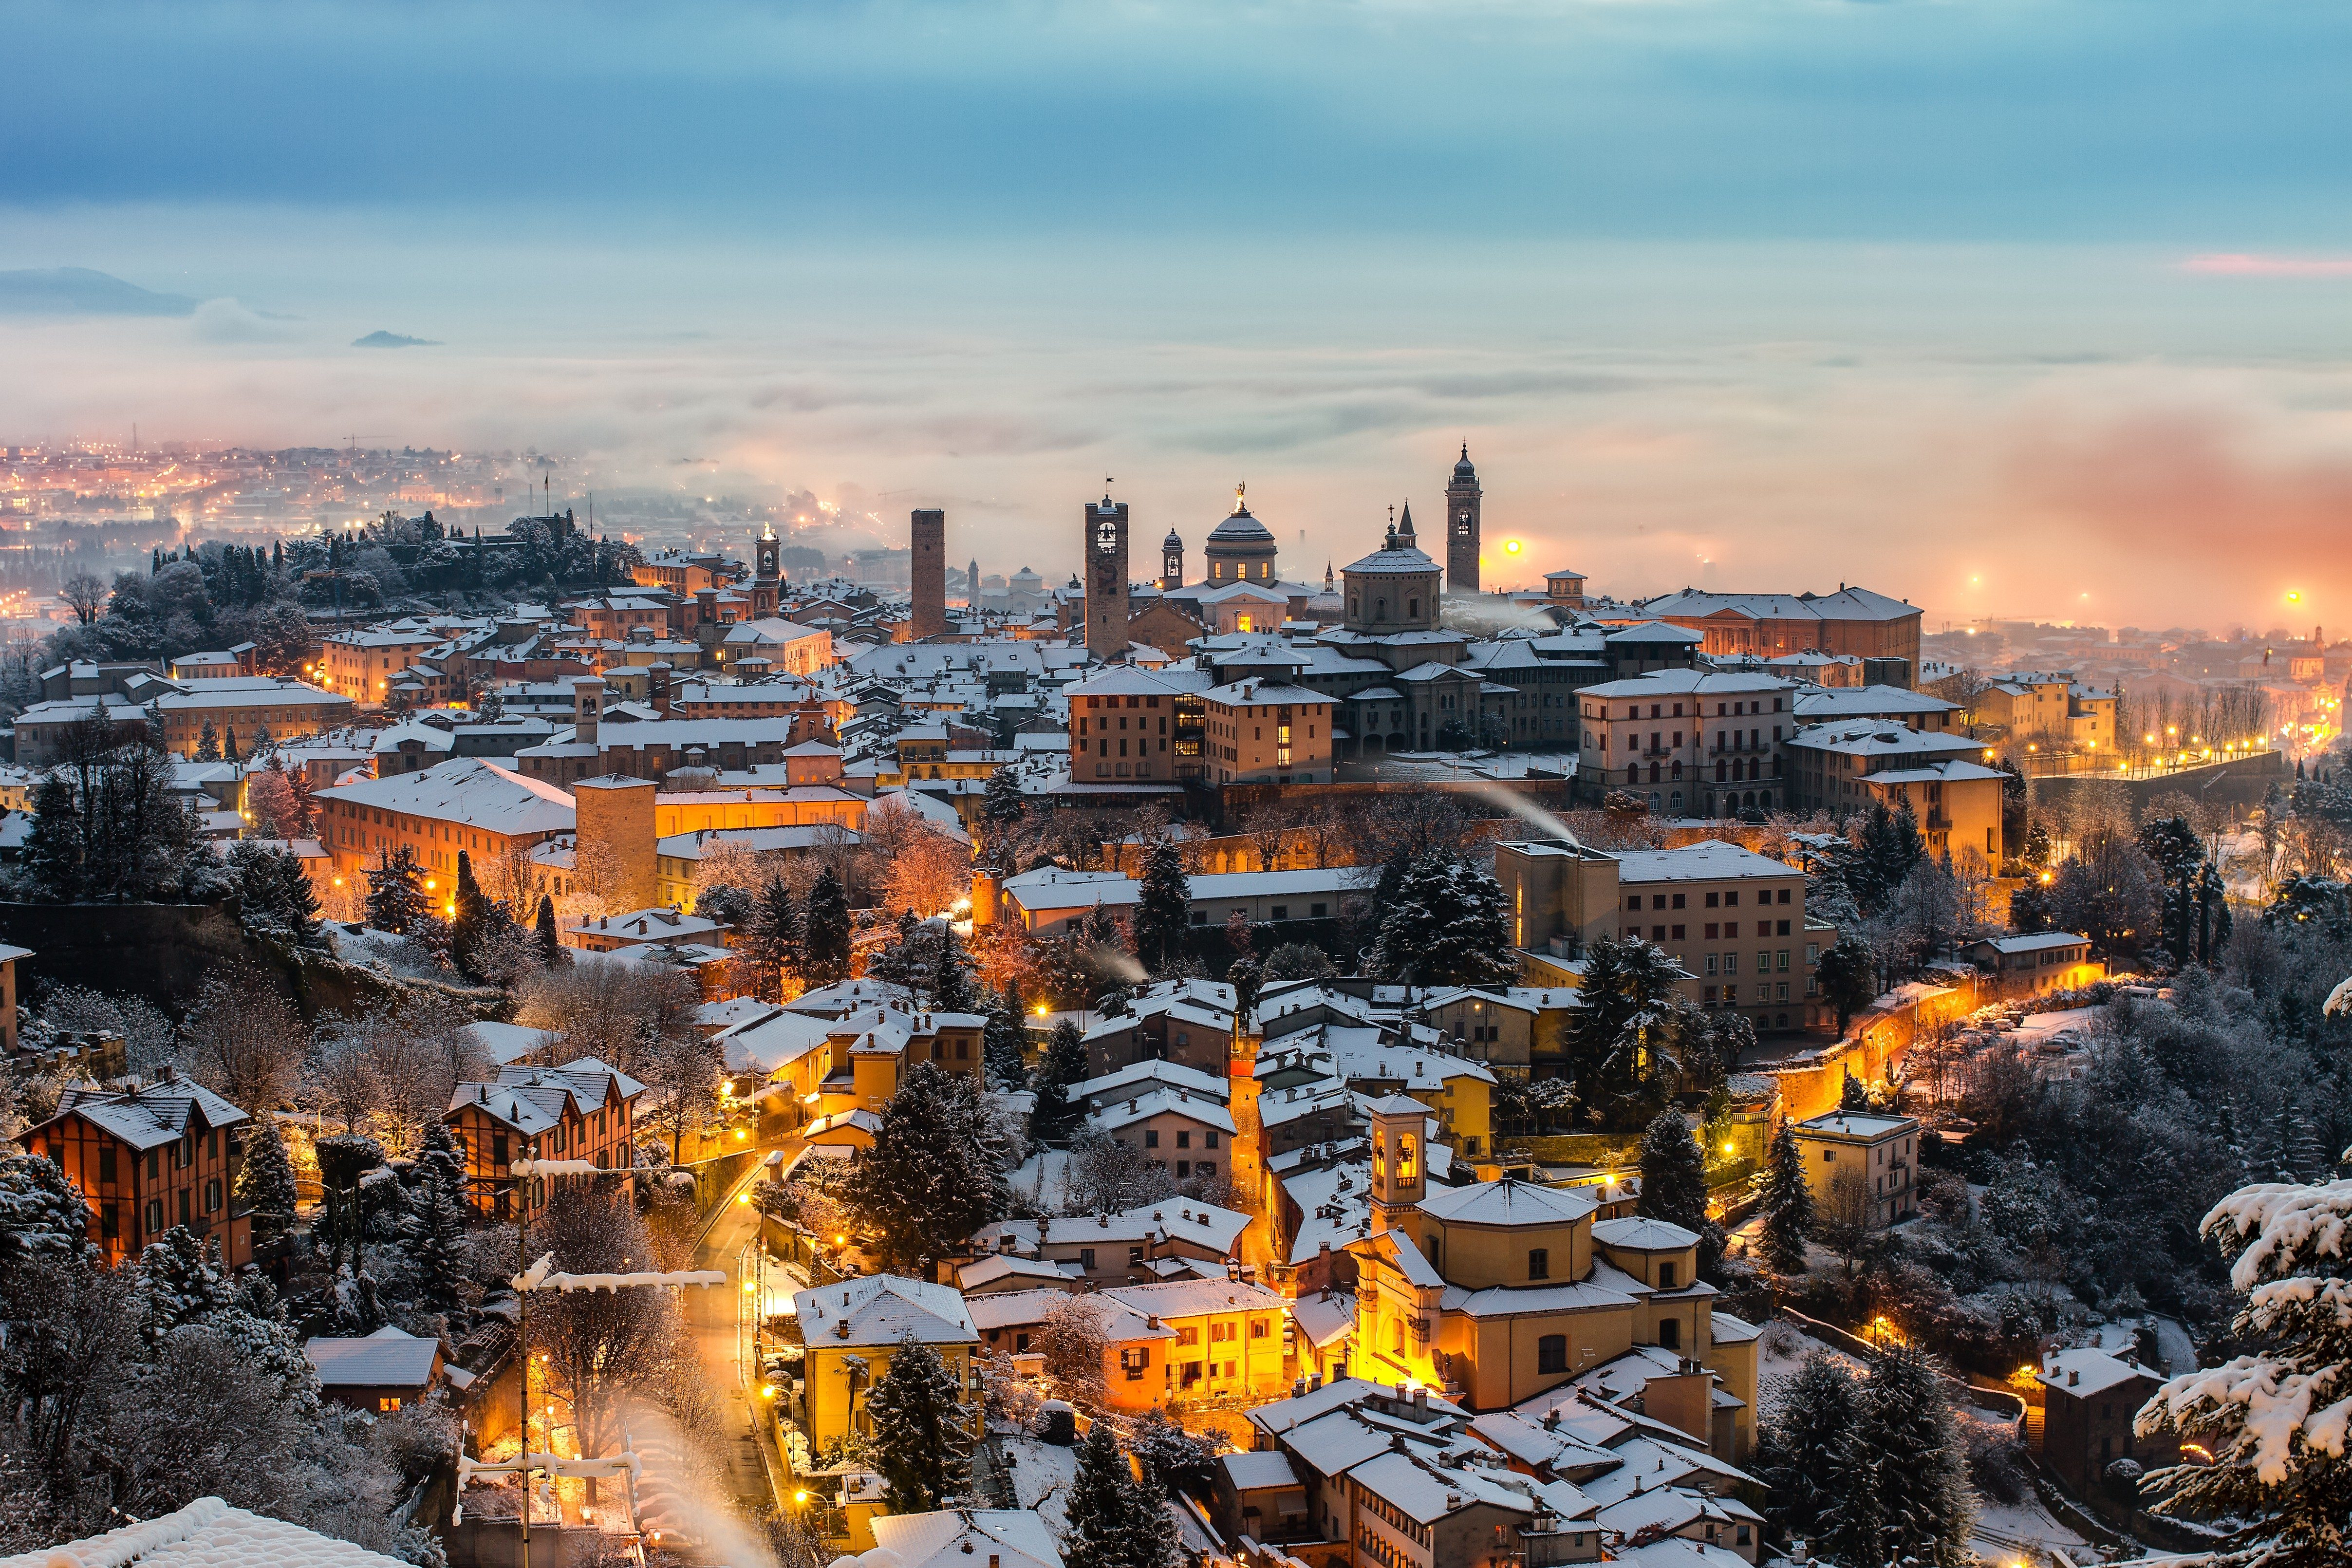 Beautiful medieval town at sunrise, Bergamo Lombardy